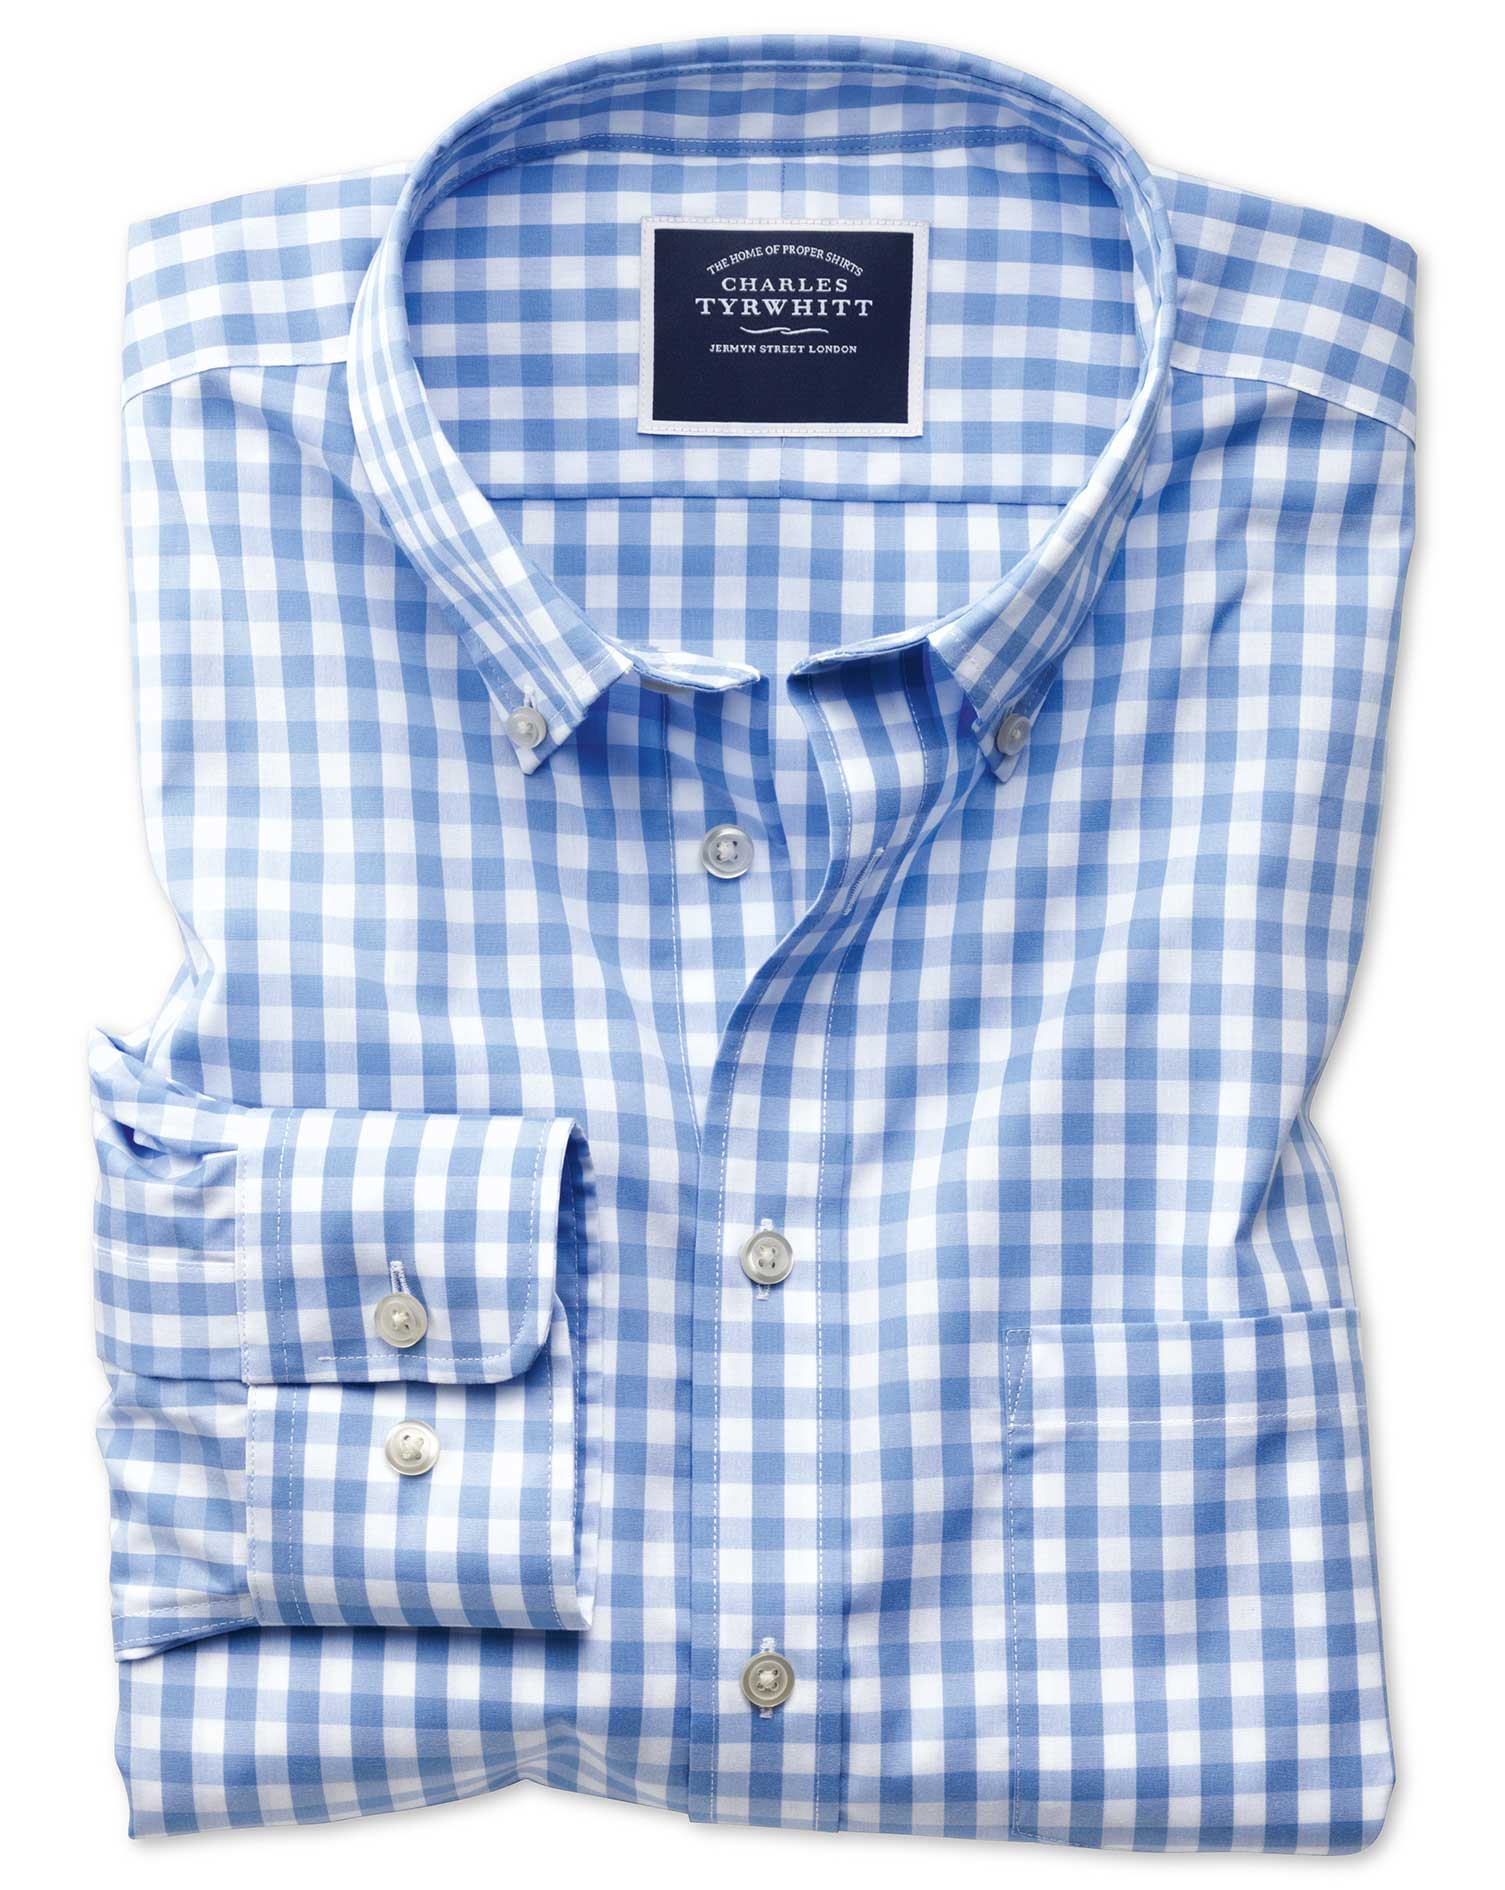 Extra Slim Fit Button-Down Non-Iron Poplin Sky Blue Gingham Cotton Shirt Single Cuff Size XXL by Cha